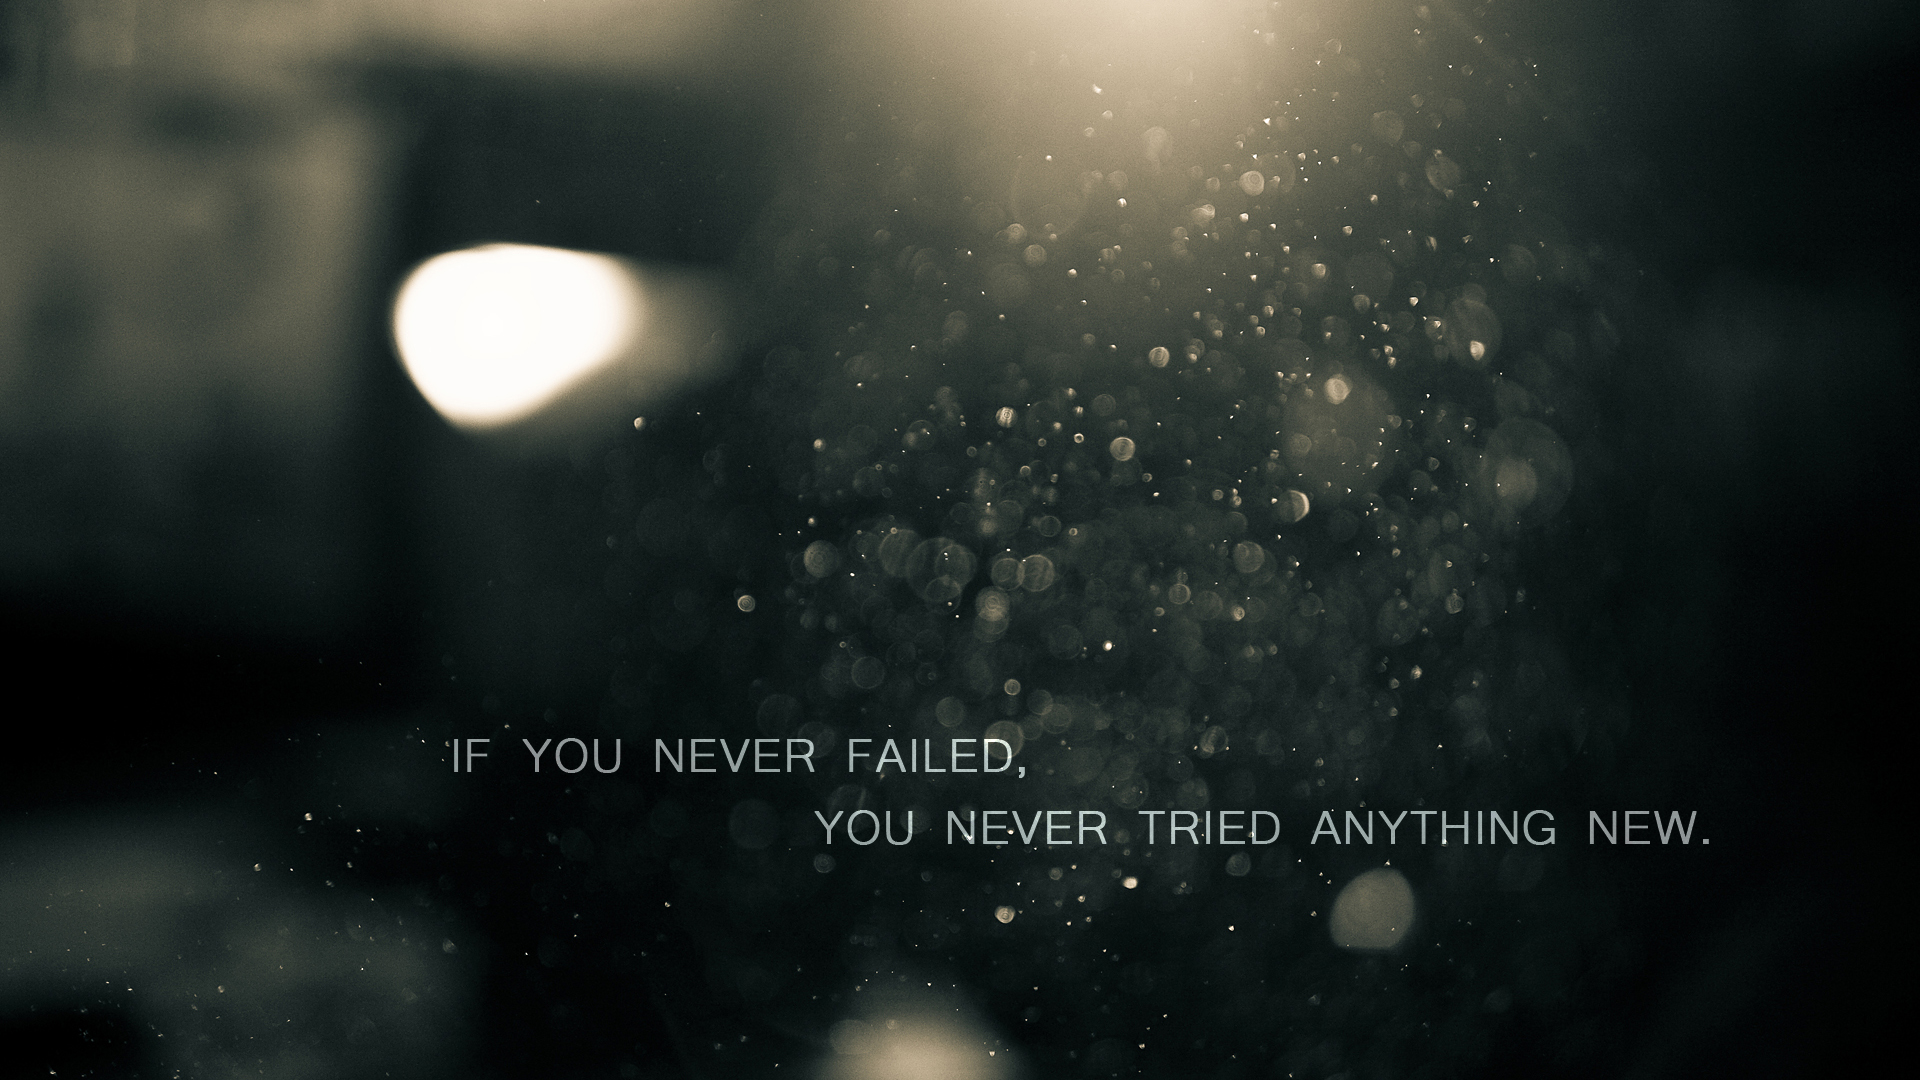 Inspirational Slogans 352 Motivational Hd Wallpapers  Background Images  Wallpaper Abyss